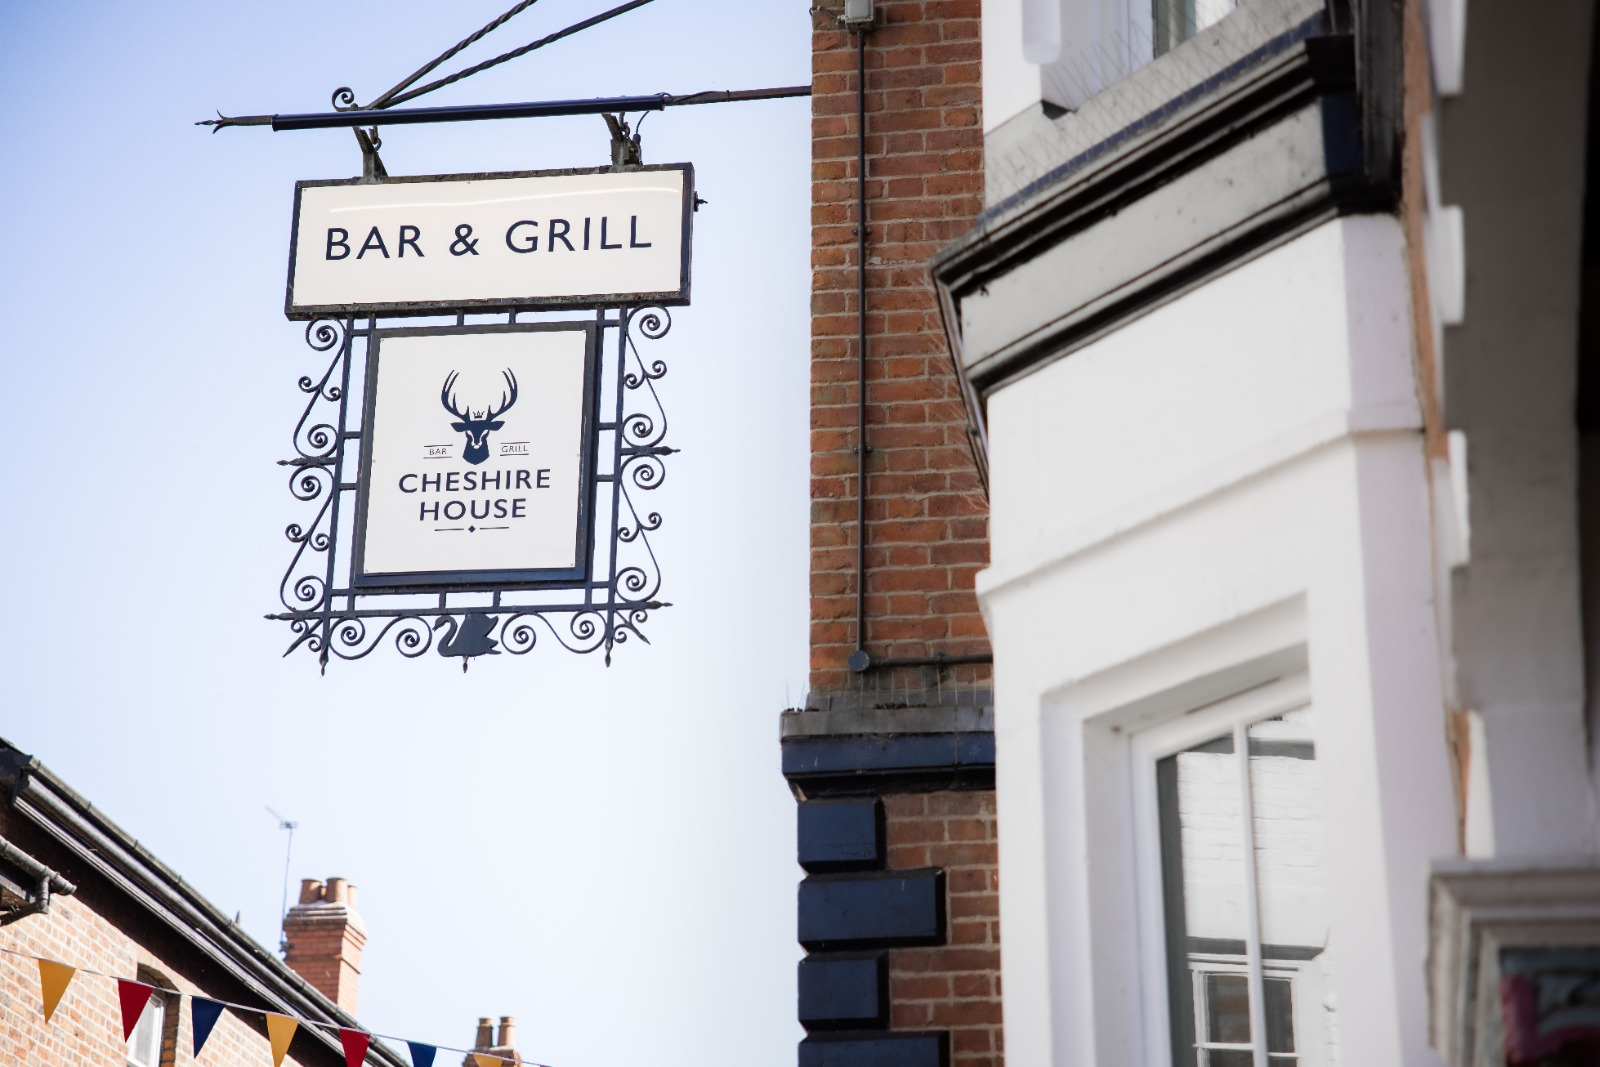 Cheshire House Bar and Grill